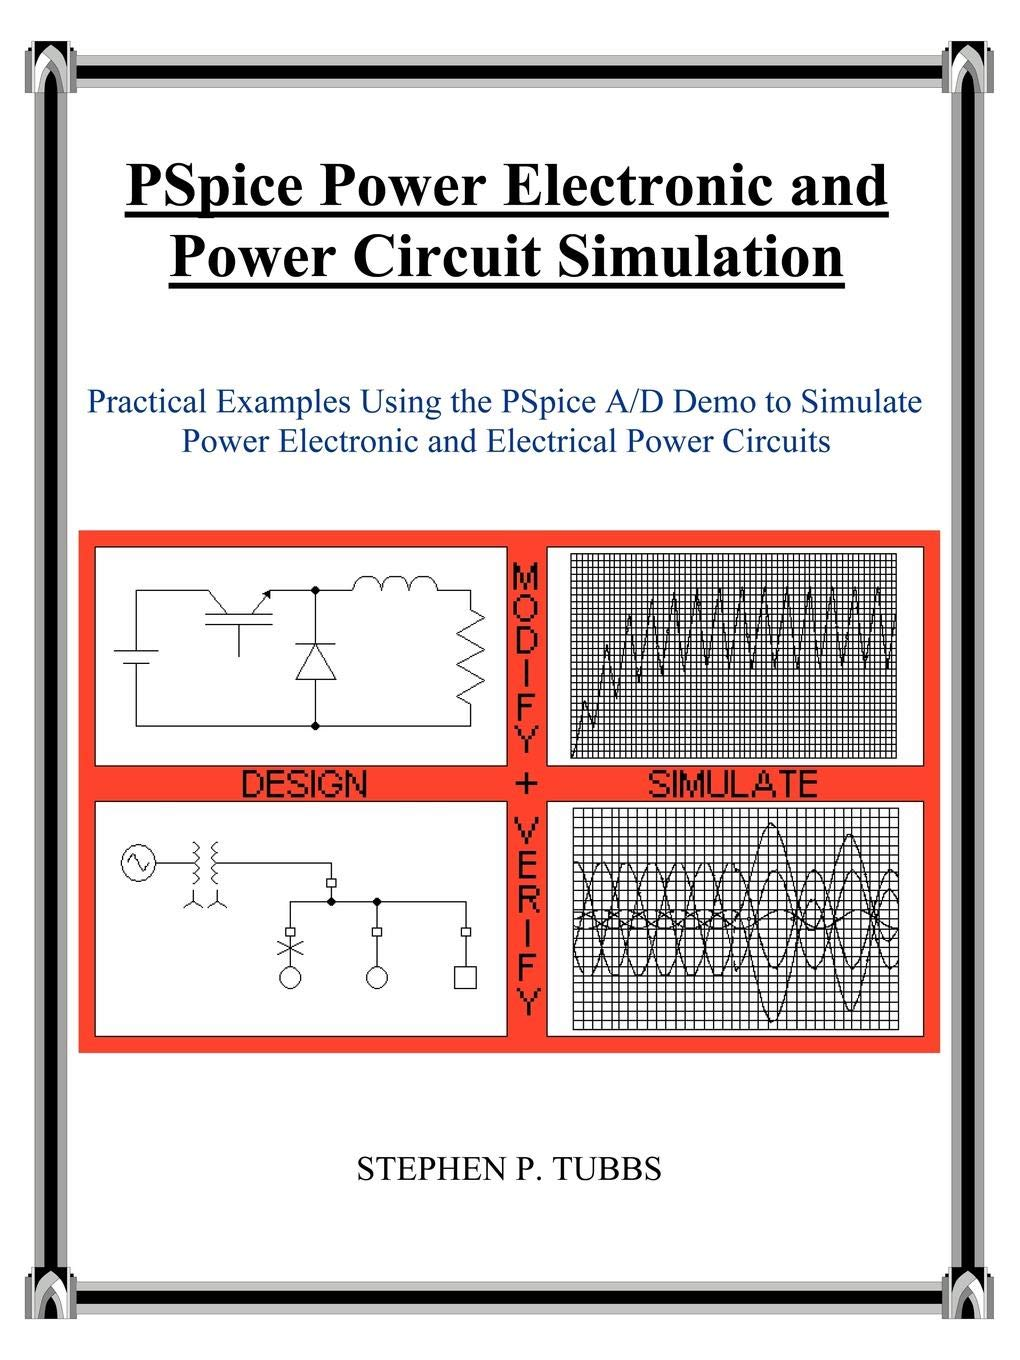 Pspice Power Electronic And Circuit Simulation Stephen Philip Circuitsimulation Tubbs 9780965944694 Books